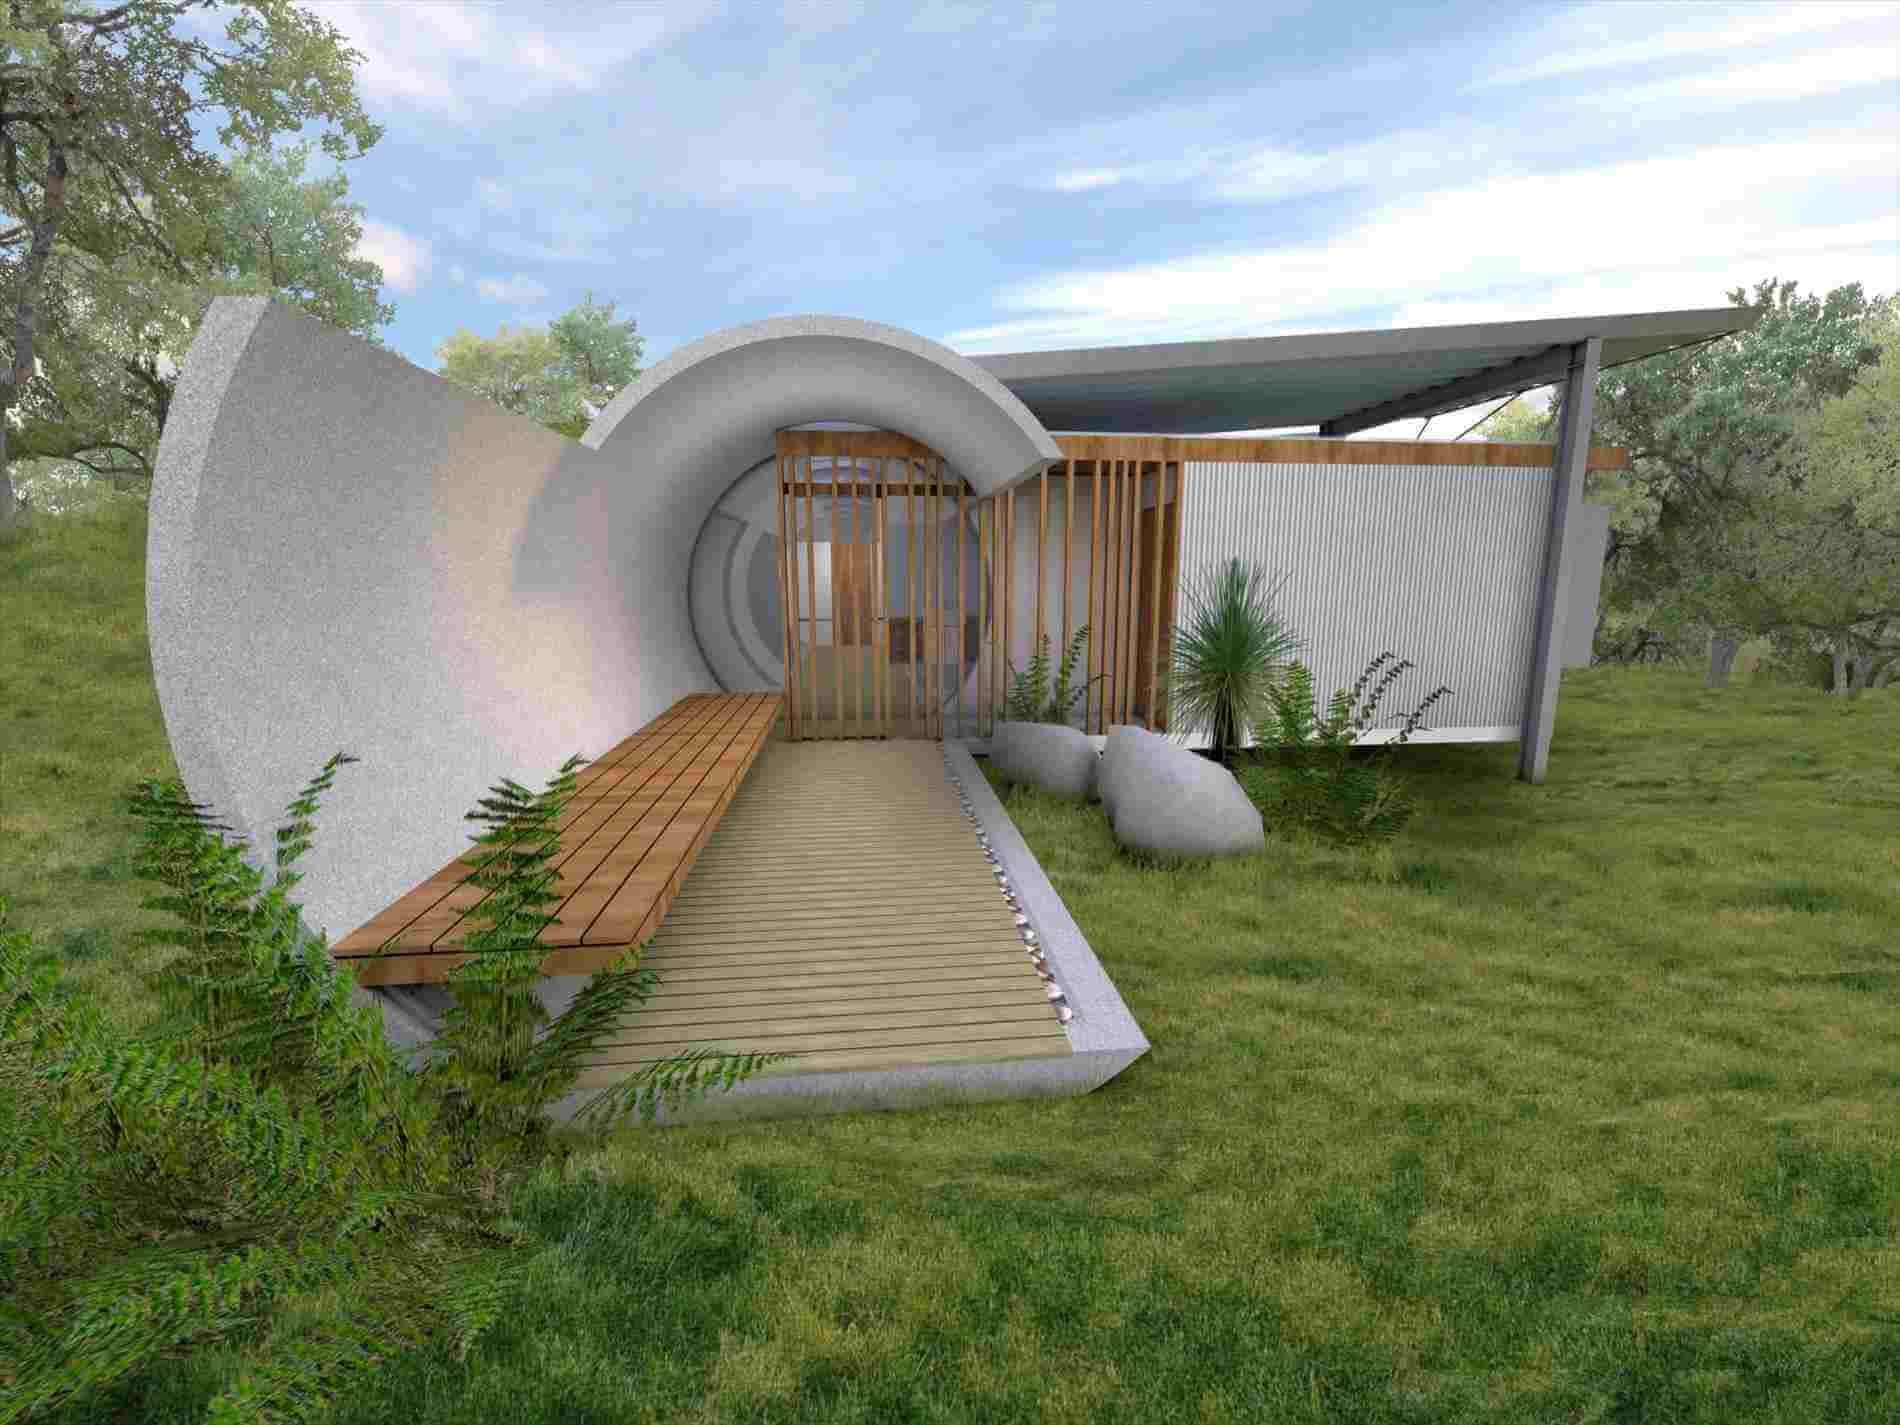 Some Amazing Underground House Design That You Can Also Have Earth Homes Underground House Plans Underground Homes